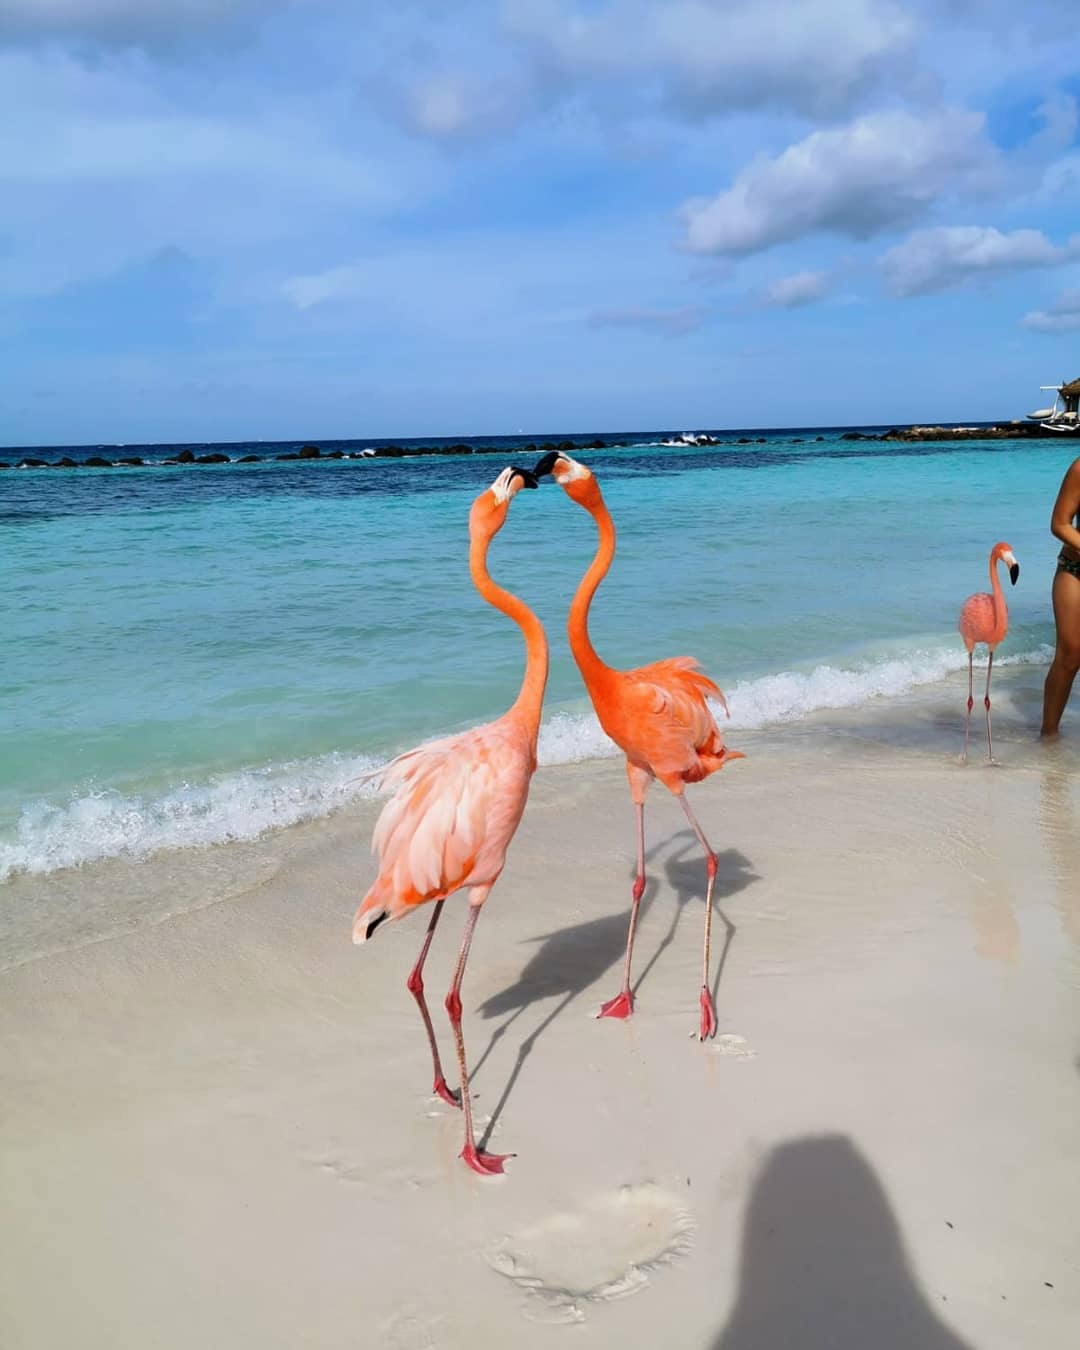 Honeymoon Ditemani Flamingo Pantai di Renaissance Private Island 6